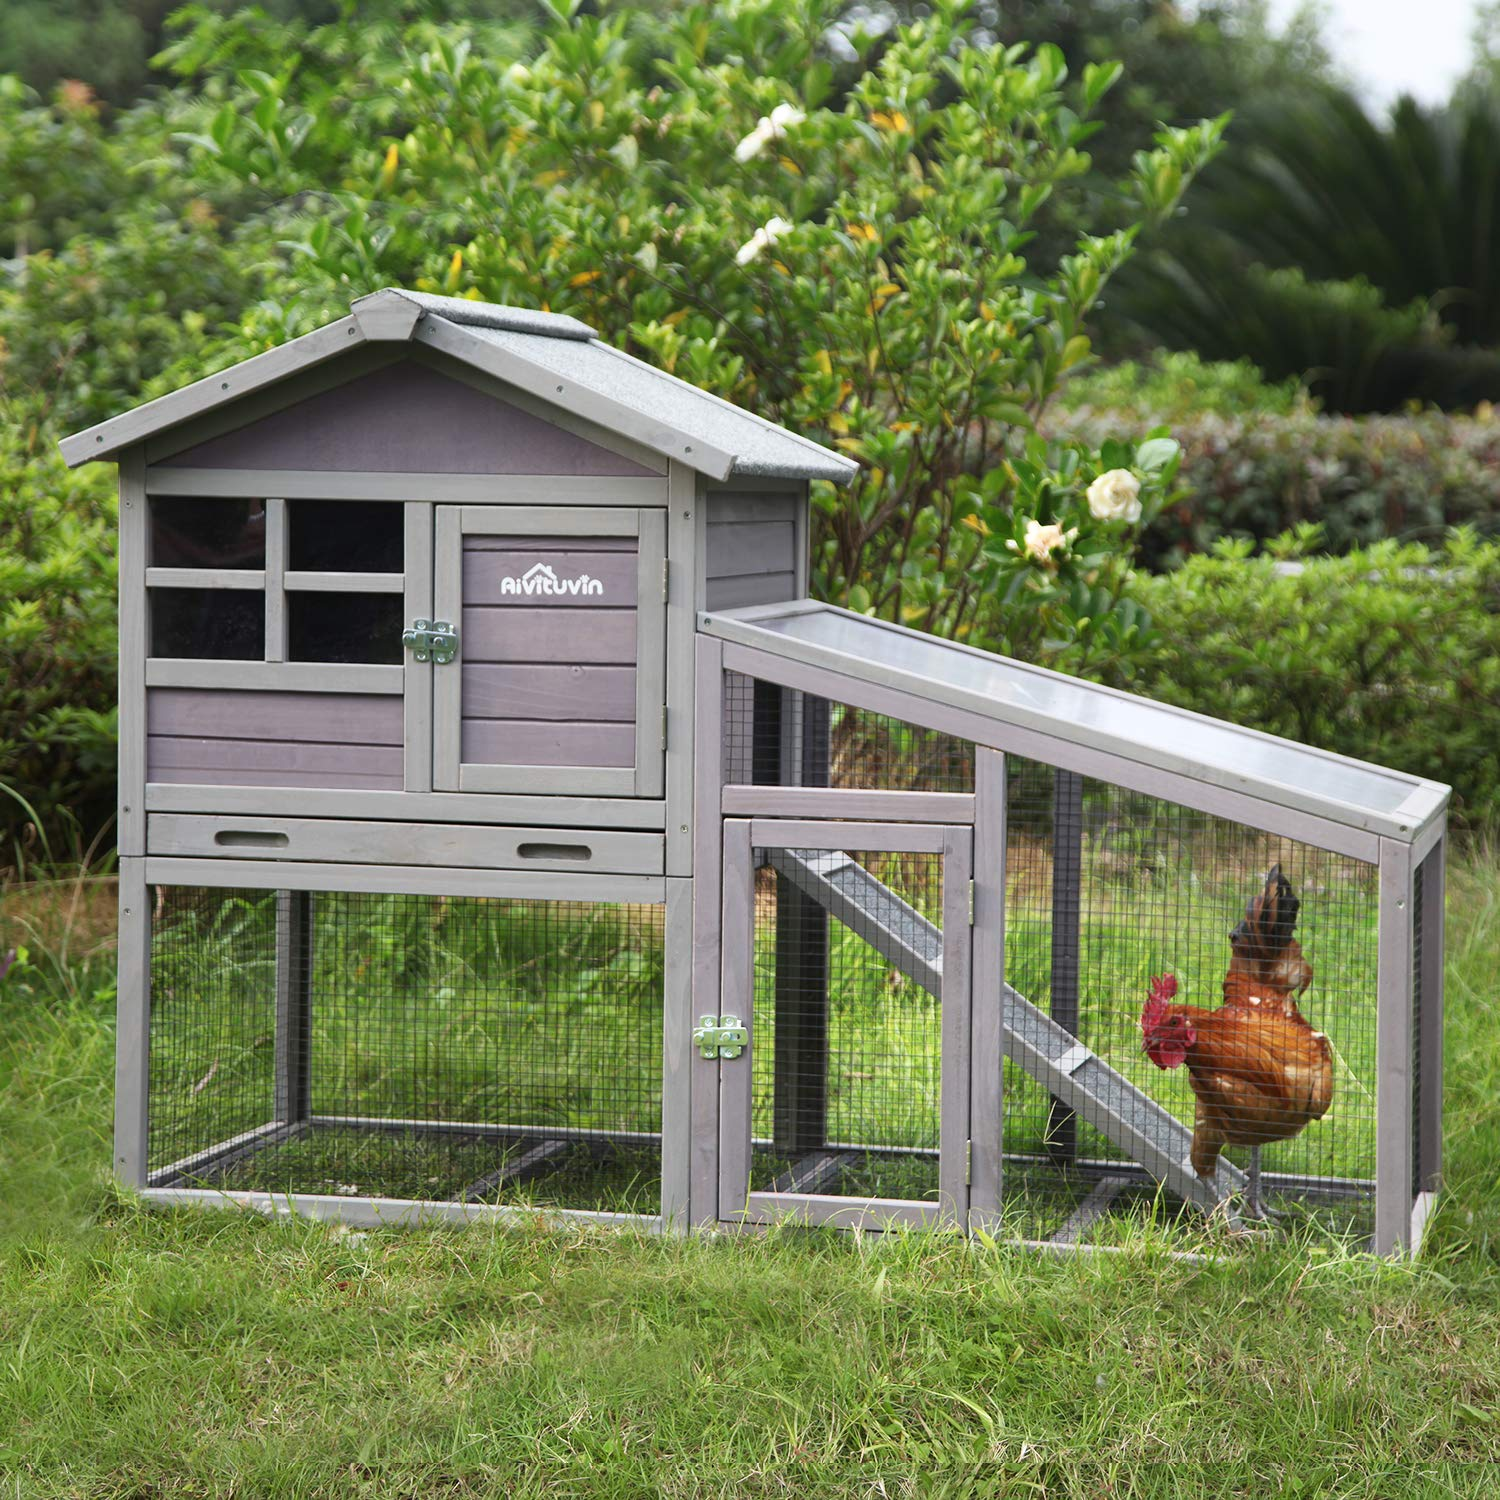 Aivituvin Chicken Coop Indoor and Outdoor,Rabbit Hutch with Removable Bottom Wire Mesh & PVC Layer,Deeper No LeakageTray,Wooden Hen House with Nesting Box,UV Panel by Aivituvin (Image #5)